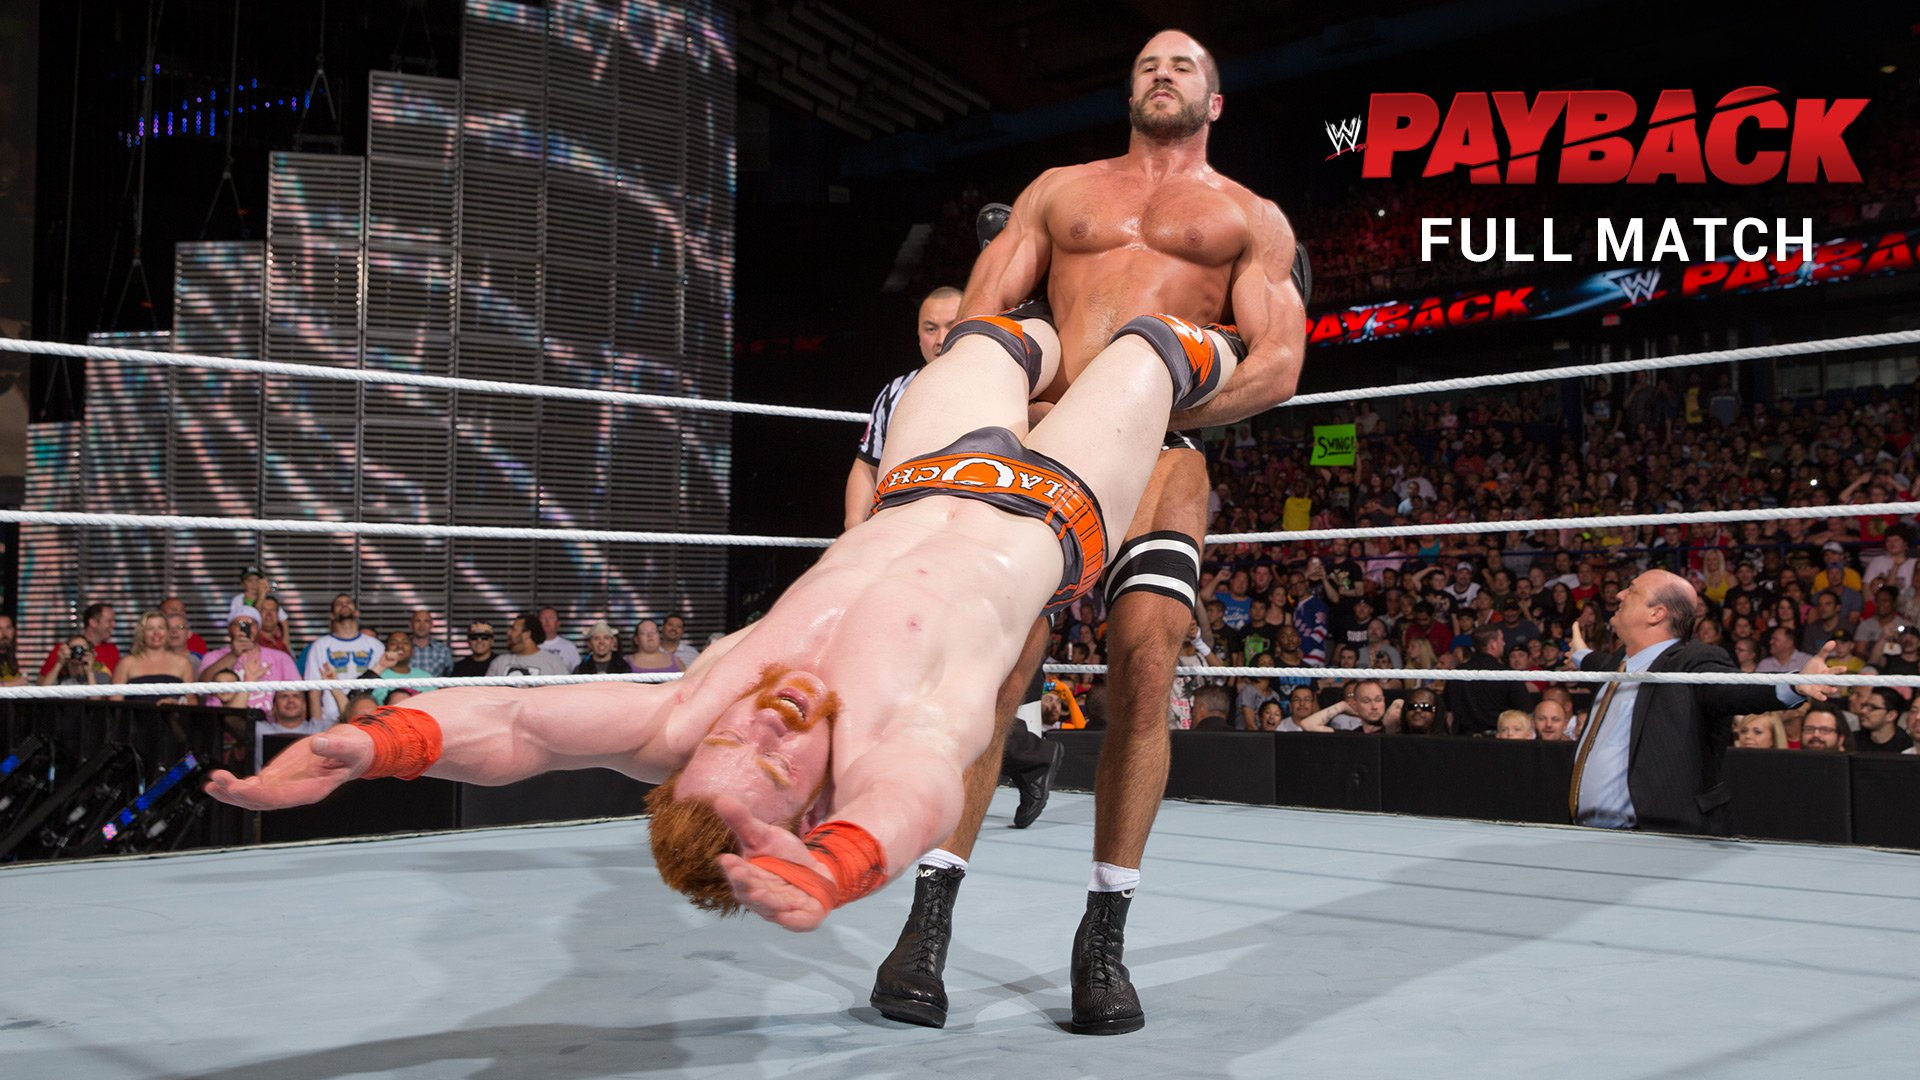 Sheamus vs. Cesaro - U.S. Title Match: WWE Payback 2014 (pełne starcie)